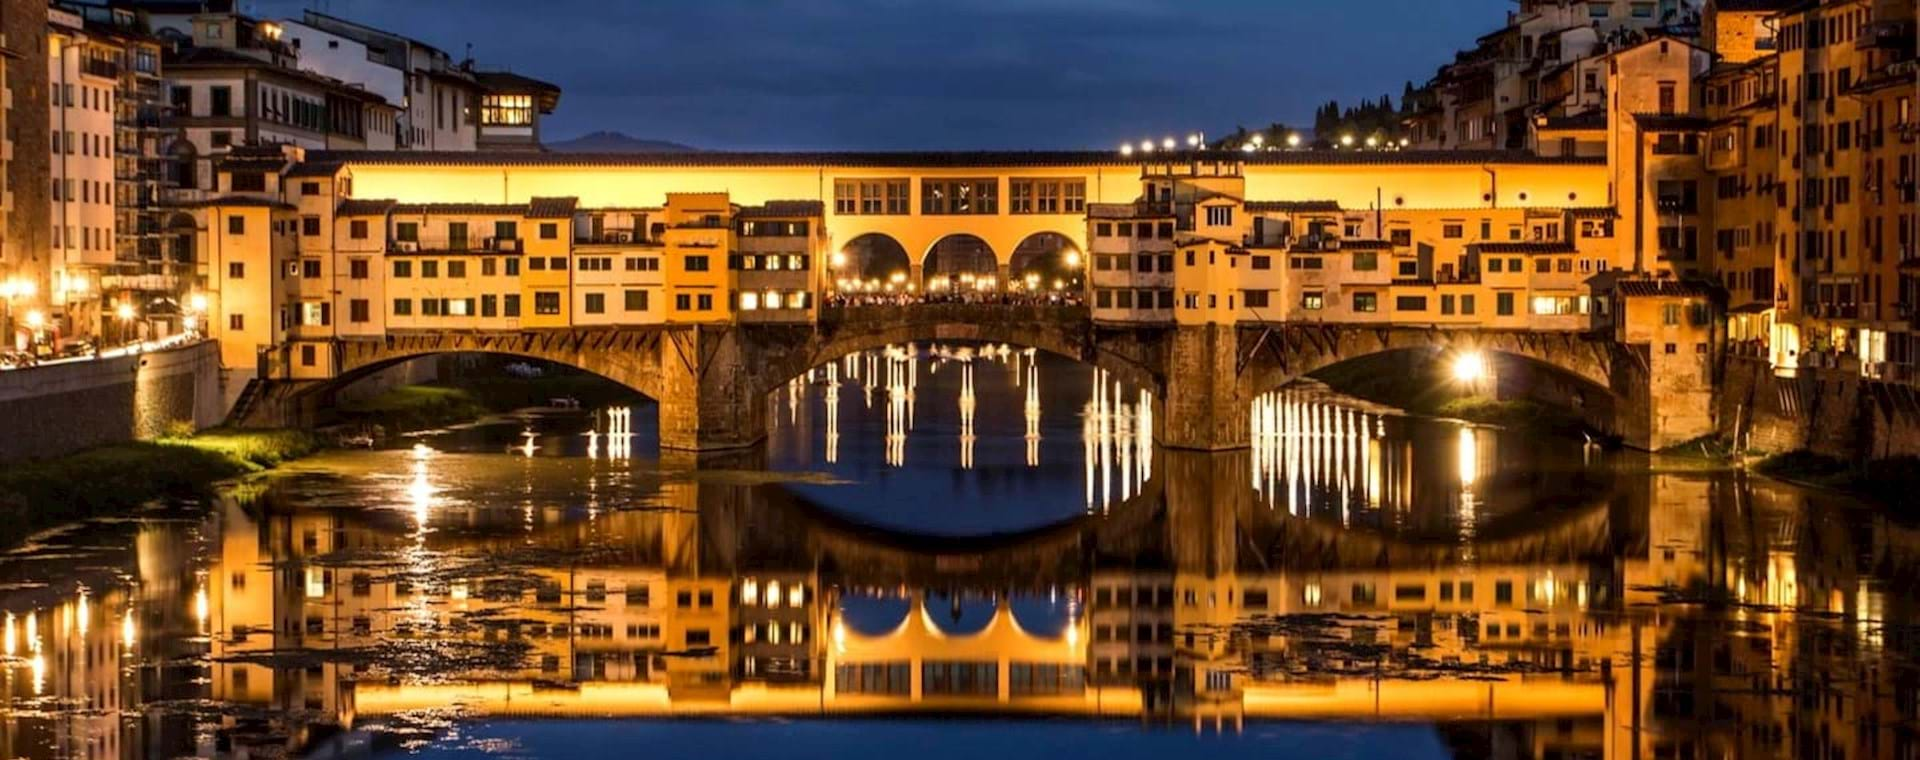 Ghosts, Mysteries and Legends of Florence Night Walking Tour